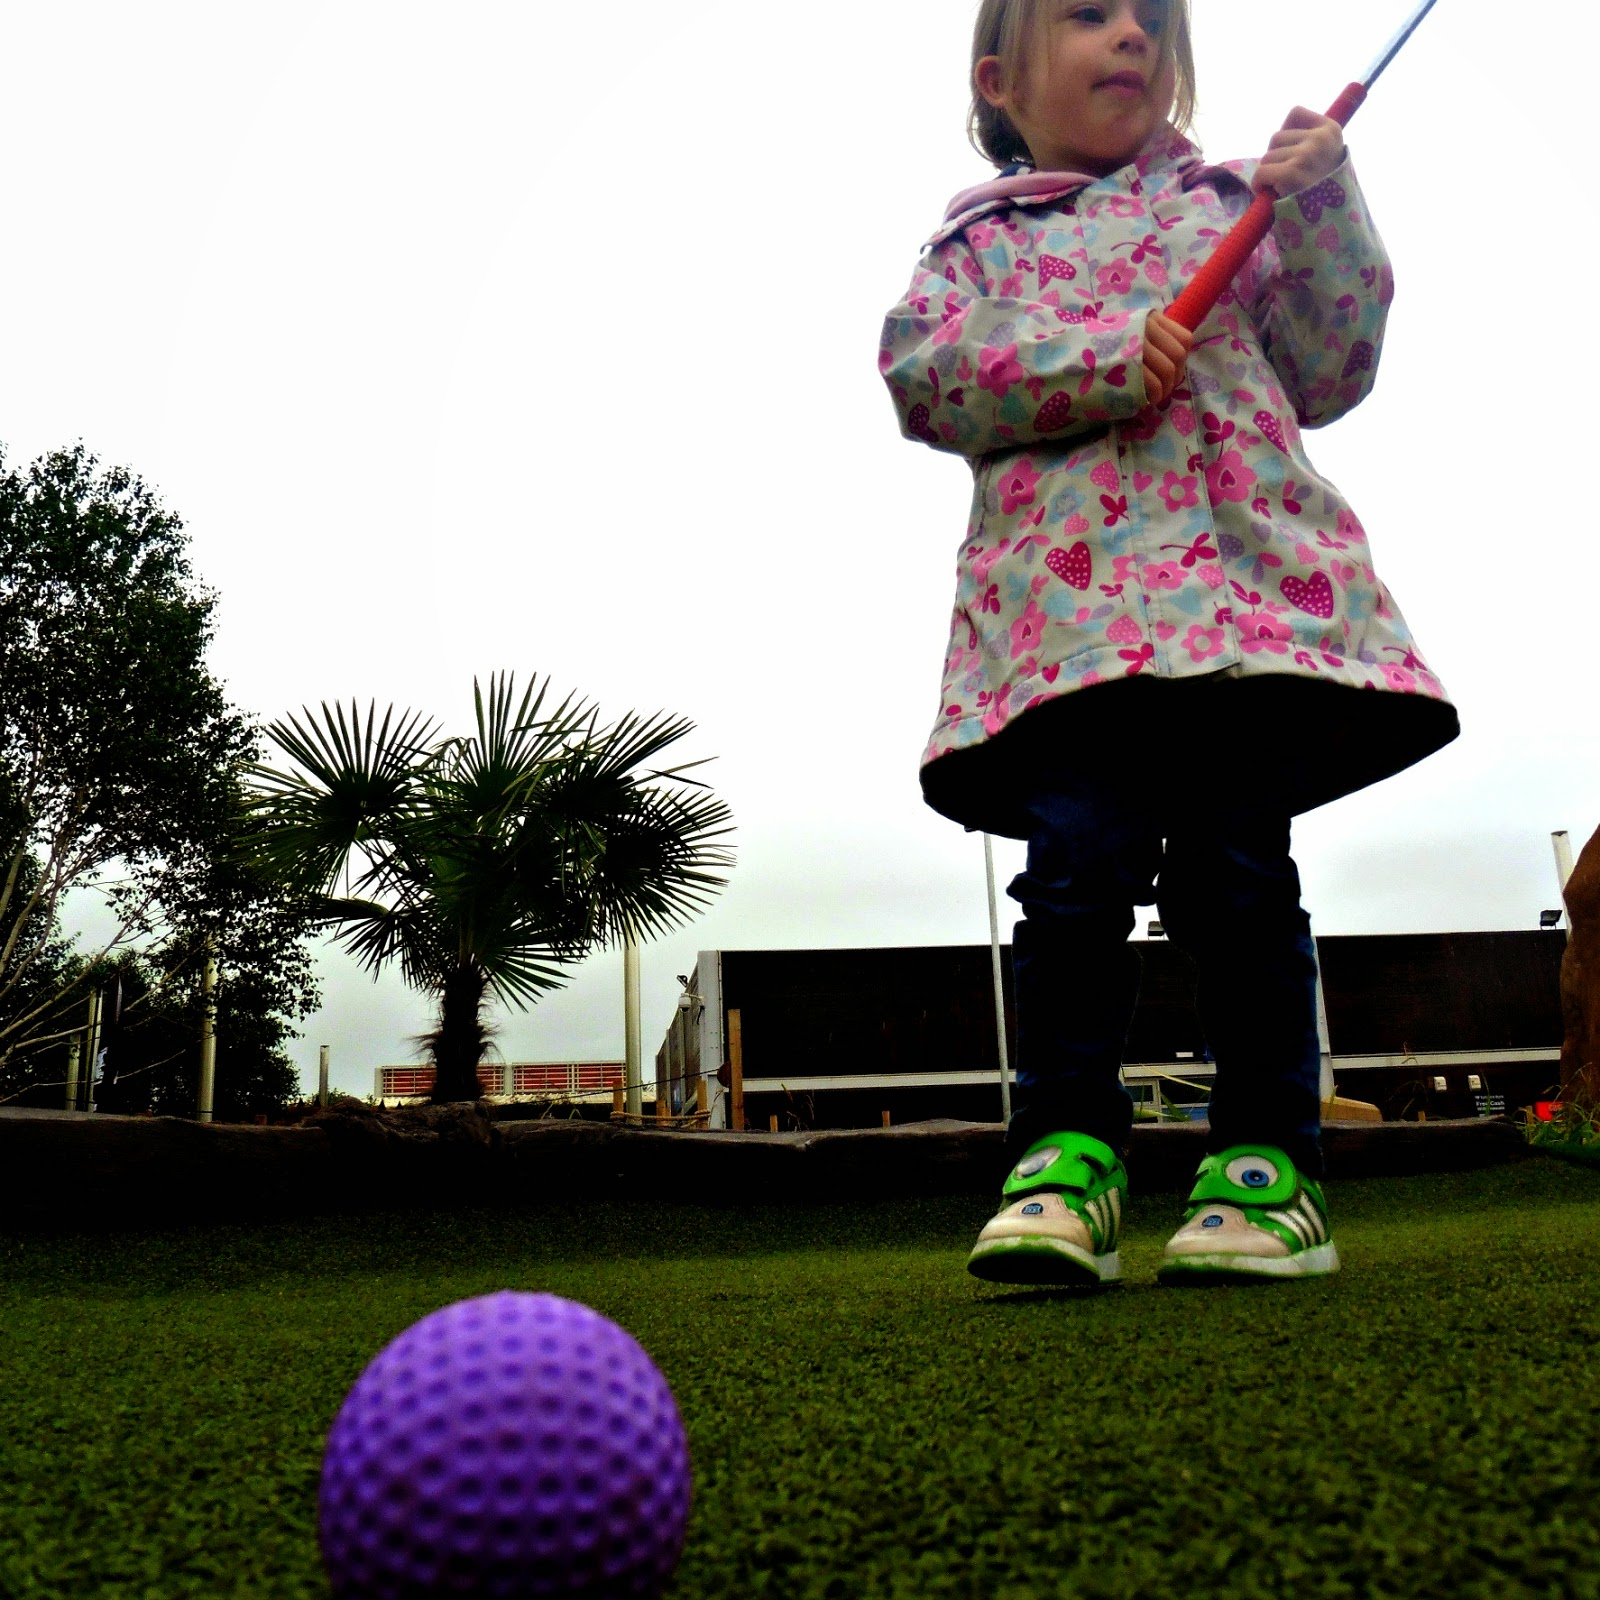 eldest playing golf